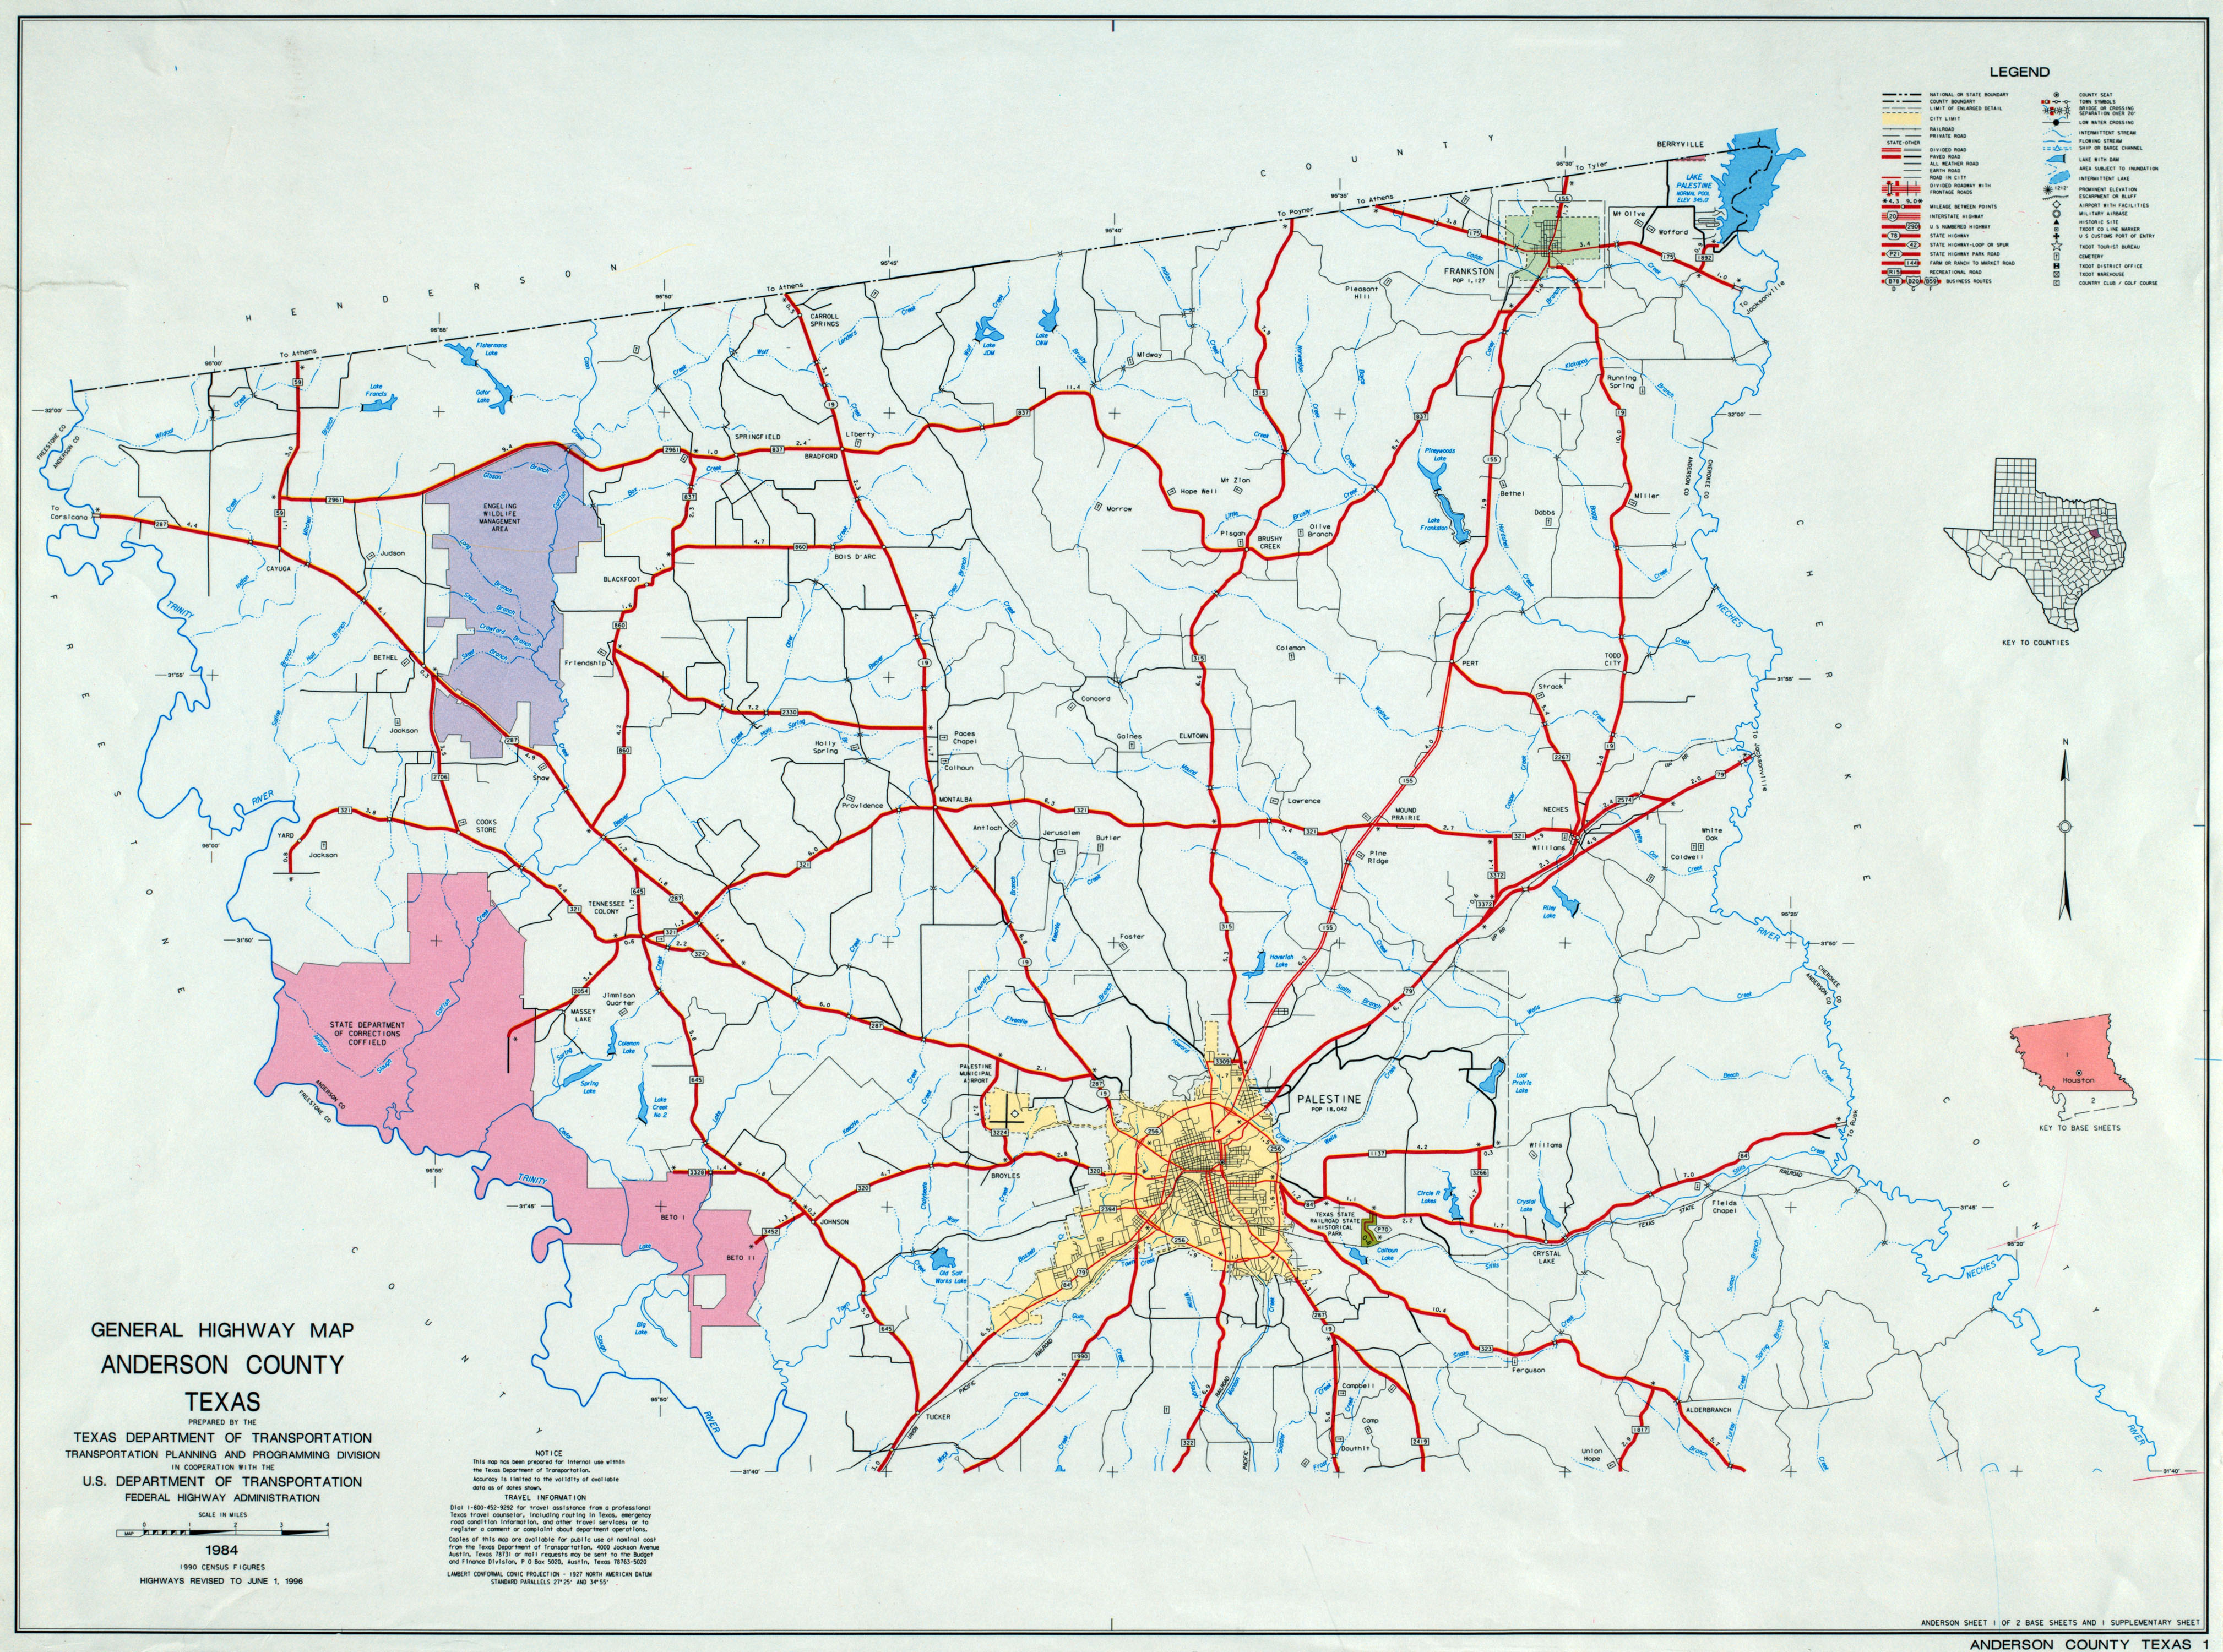 Texas County Highway Maps Browse PerryCastañeda Map Collection - Map of texas with counties